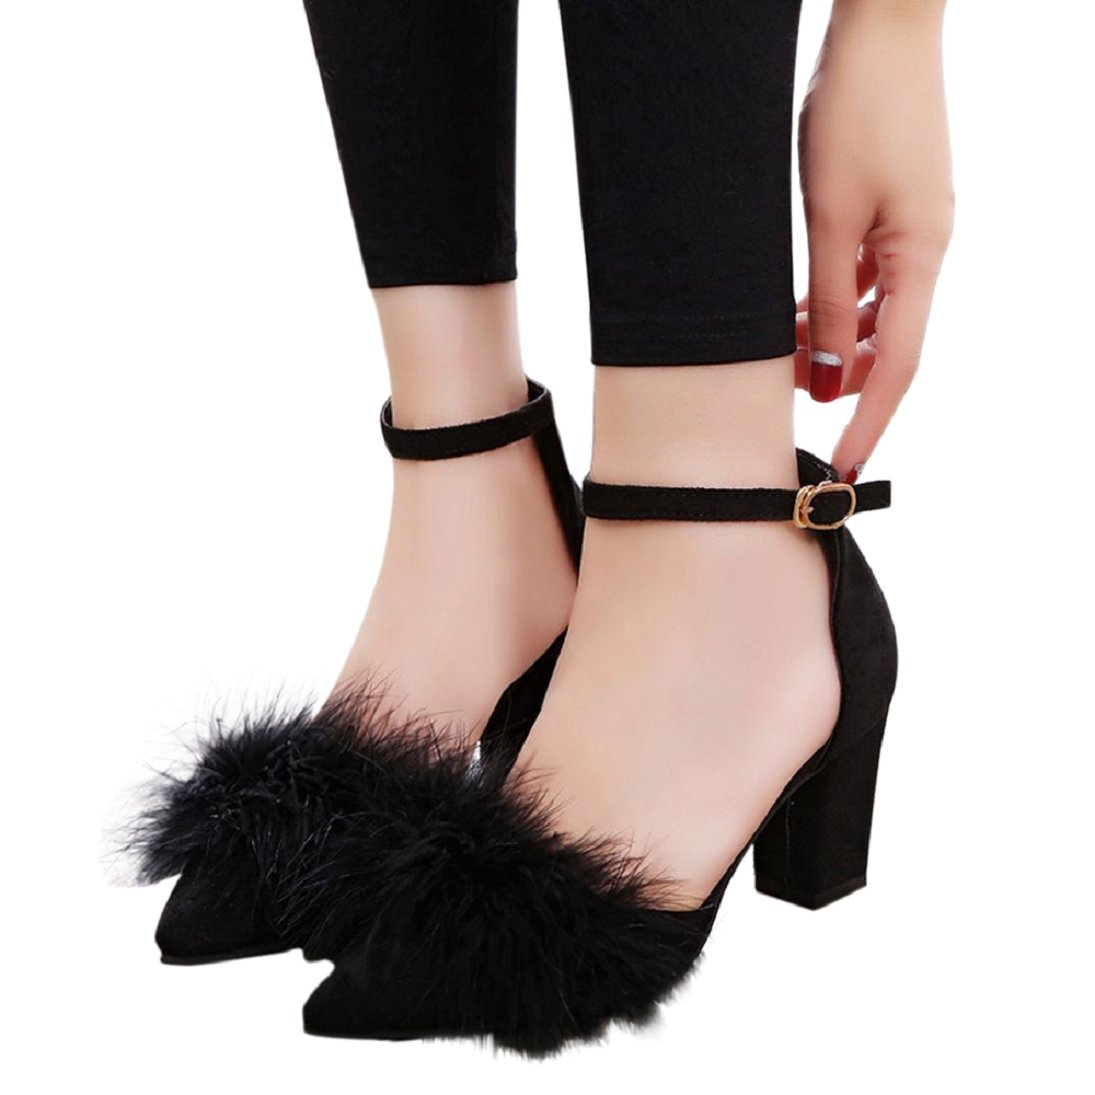 Fheavn Women Pointed Pointy Toe Plush Back Shoes Chunky Wrapped High Heel Dress Pumps Ankles Straps Shoes (US:7, Black)